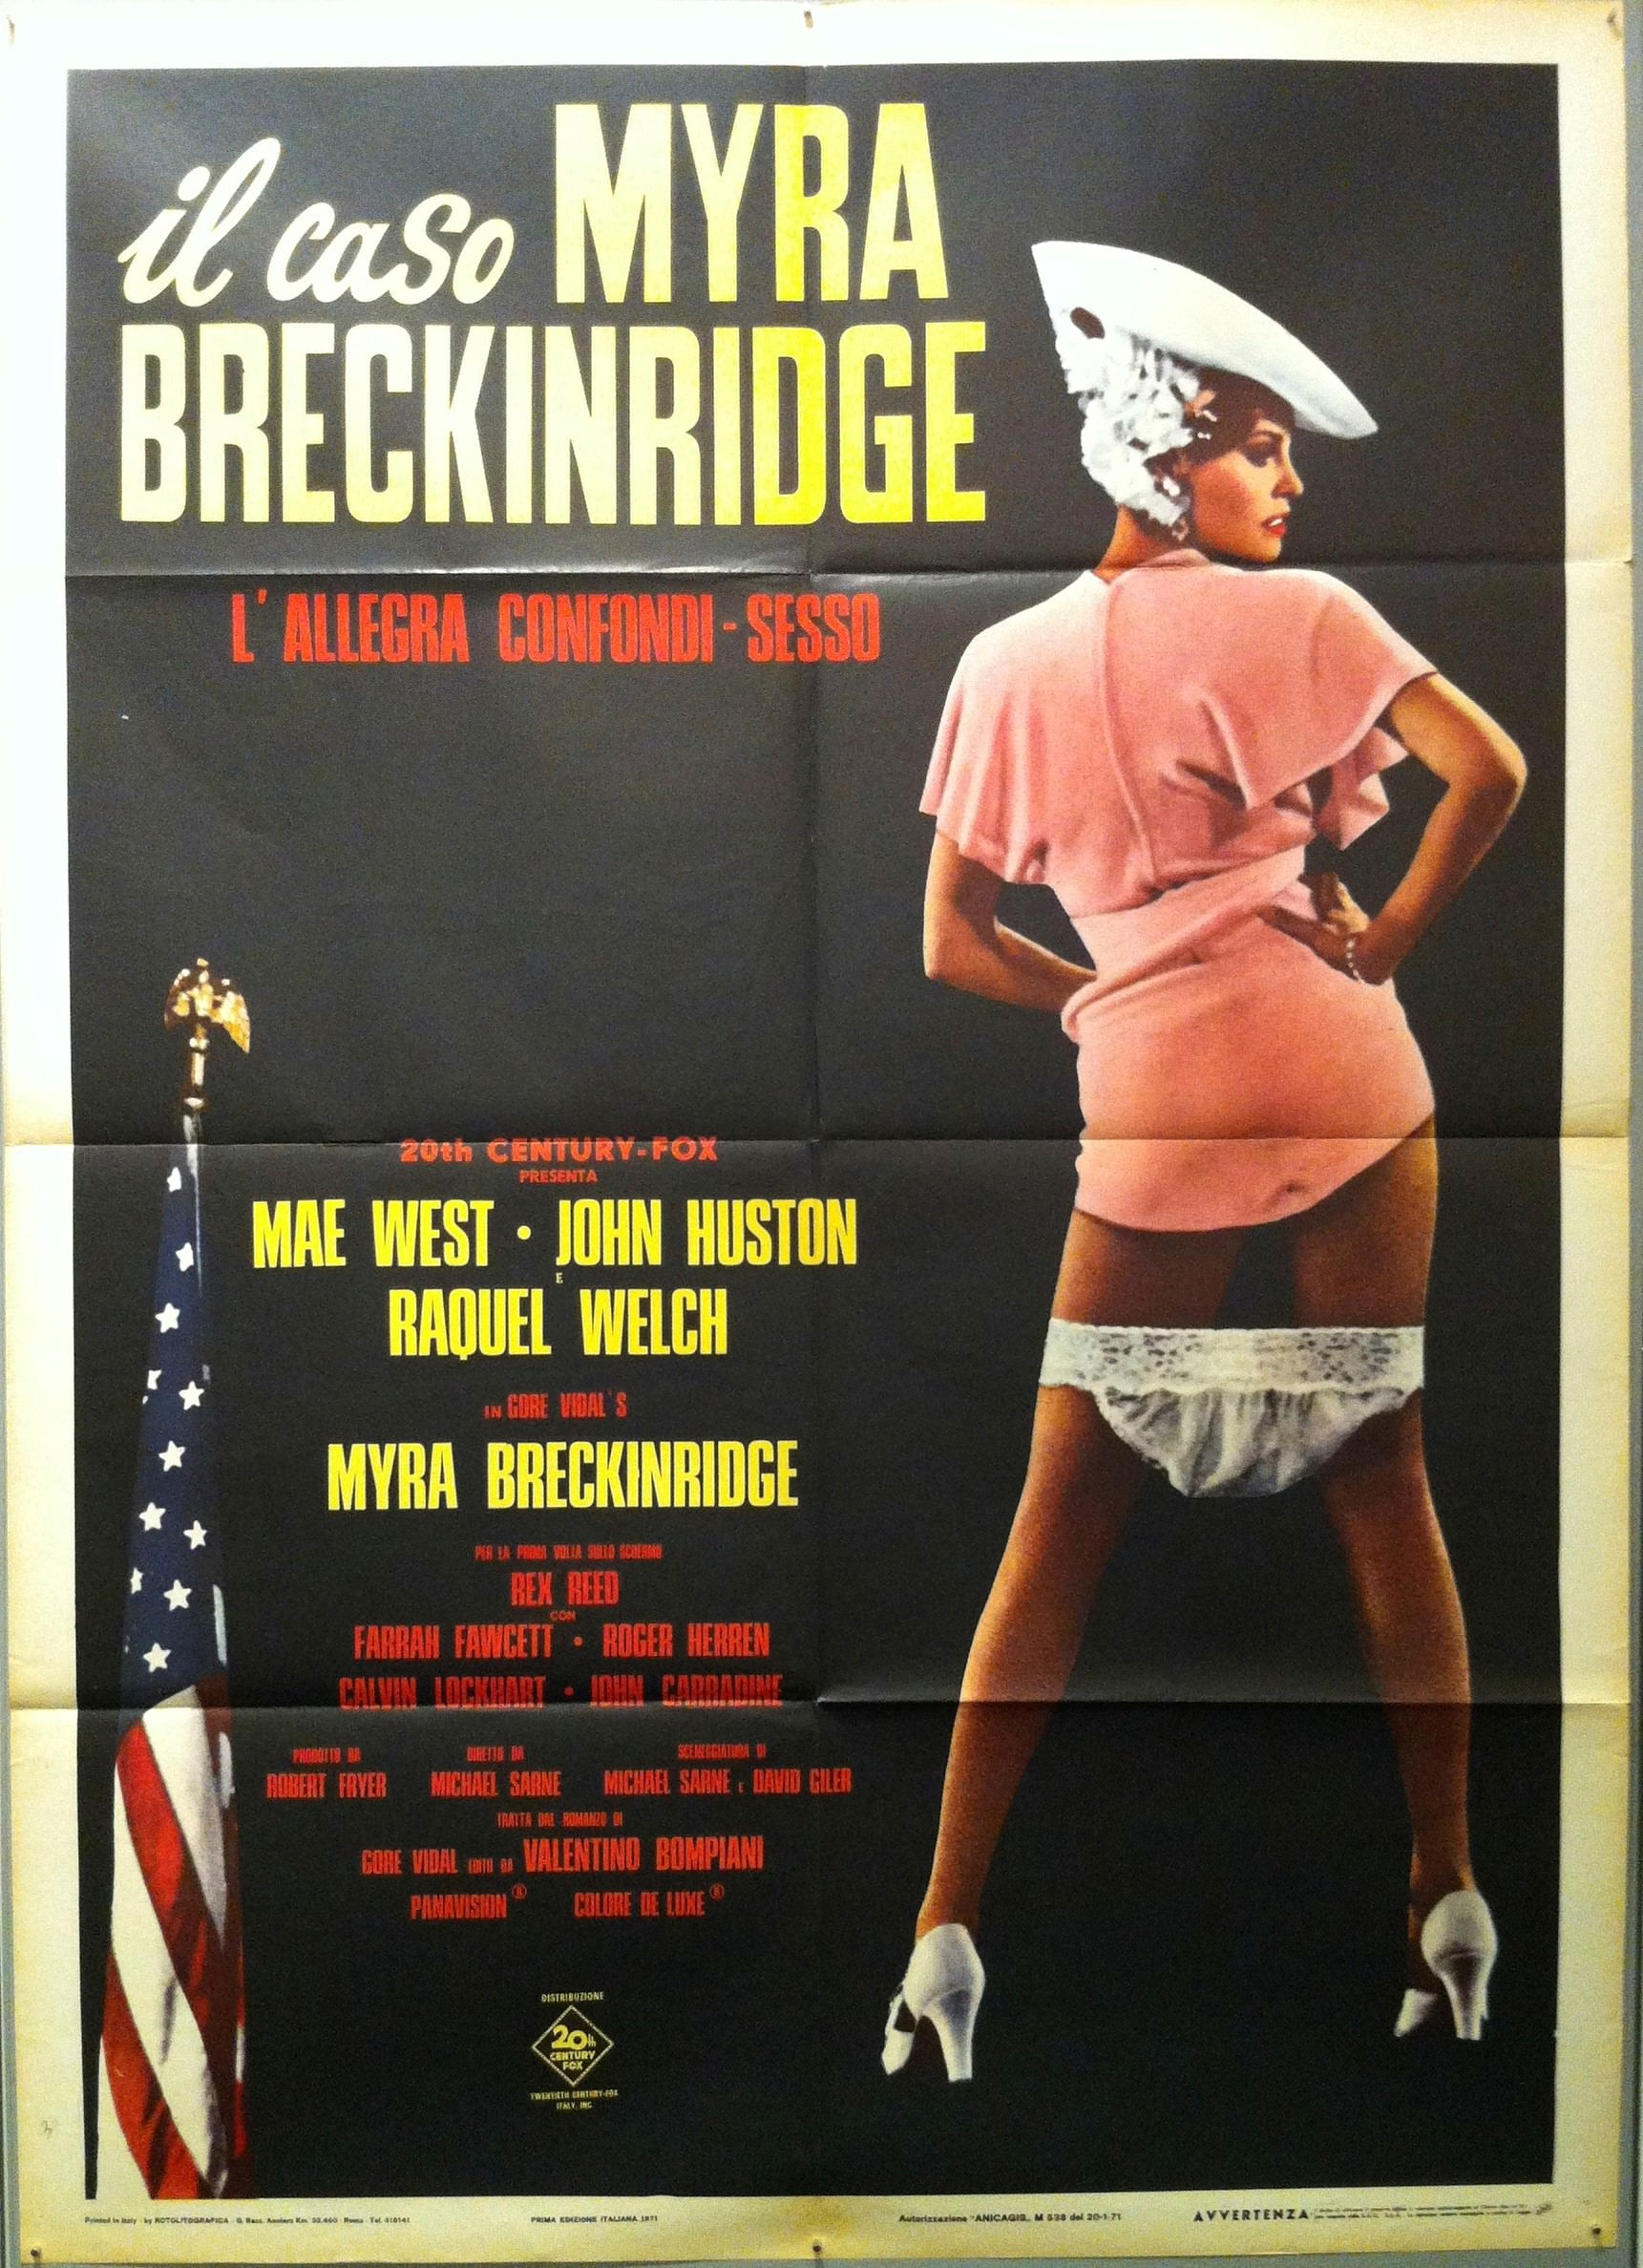 Il Caso Myra Breckinridge